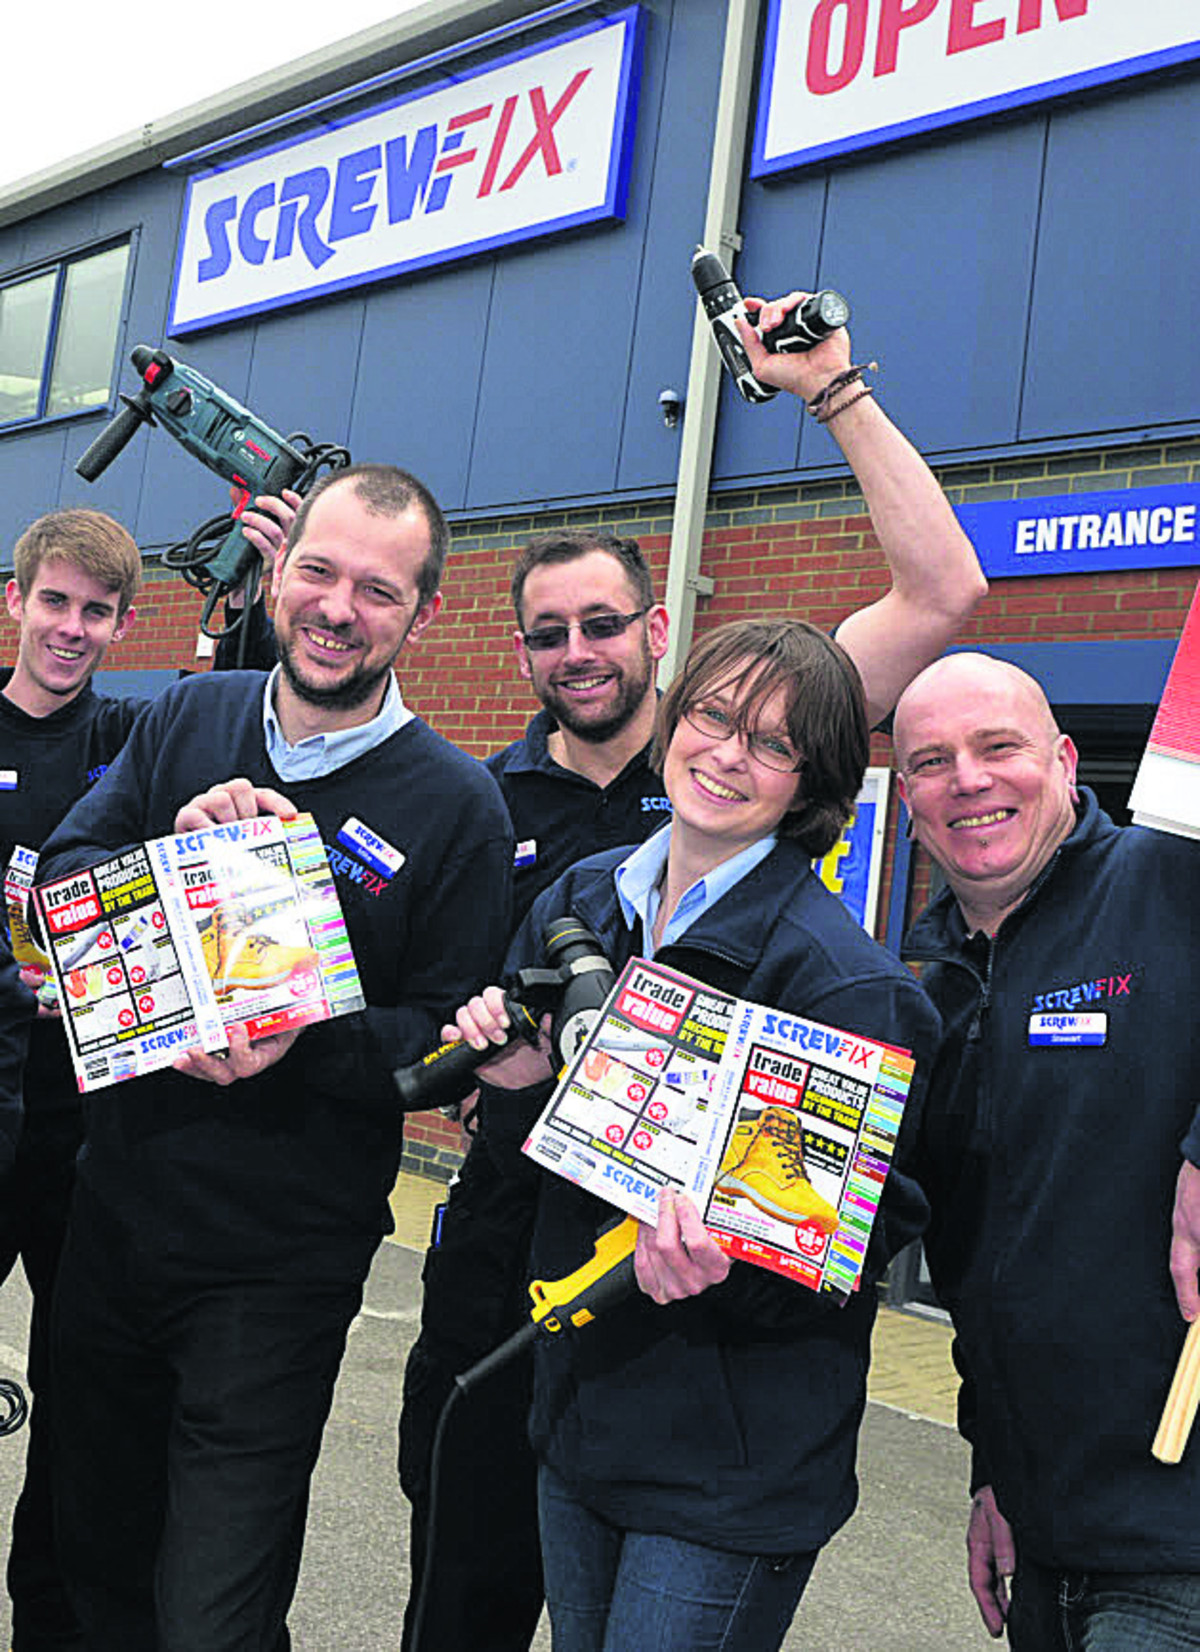 Staff prepare for the opening of a Screwfix DIY store on Hopton Park industrial estate next week which will create 13 jobs